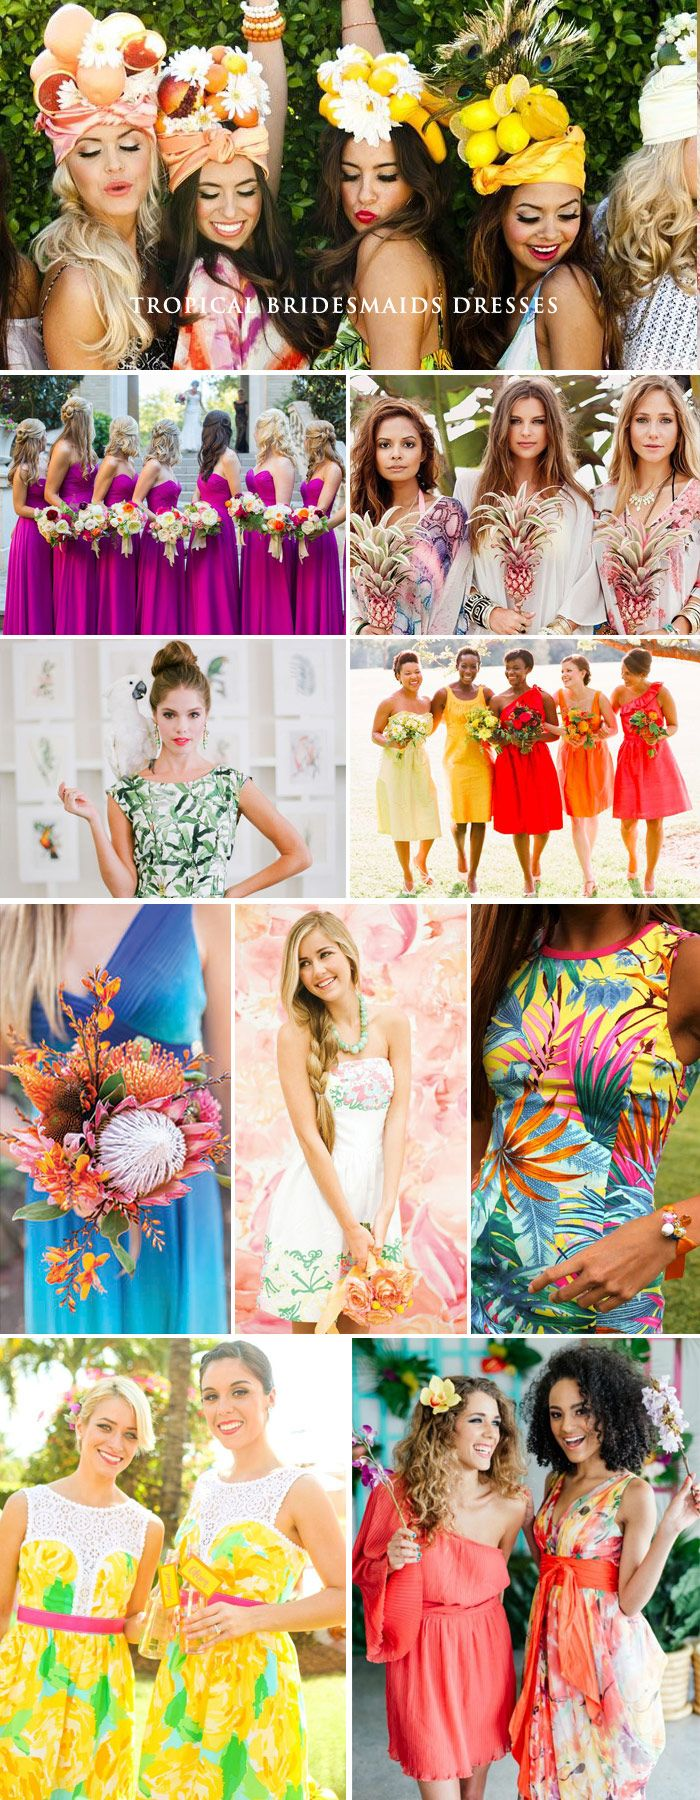 Today we're embodying the true spirit of tropical style. Ensure your girls look and feel every bit as beautiful on your big day with dreamy bridesmaids dresses. Forget grass skirts and coconut bodices, exotic attire can be just as chic for your Caribbean feast. With a Tropicana theme, there is no room to play it safe – opt for bright and bold color palettes or pretty paradisaical patterns